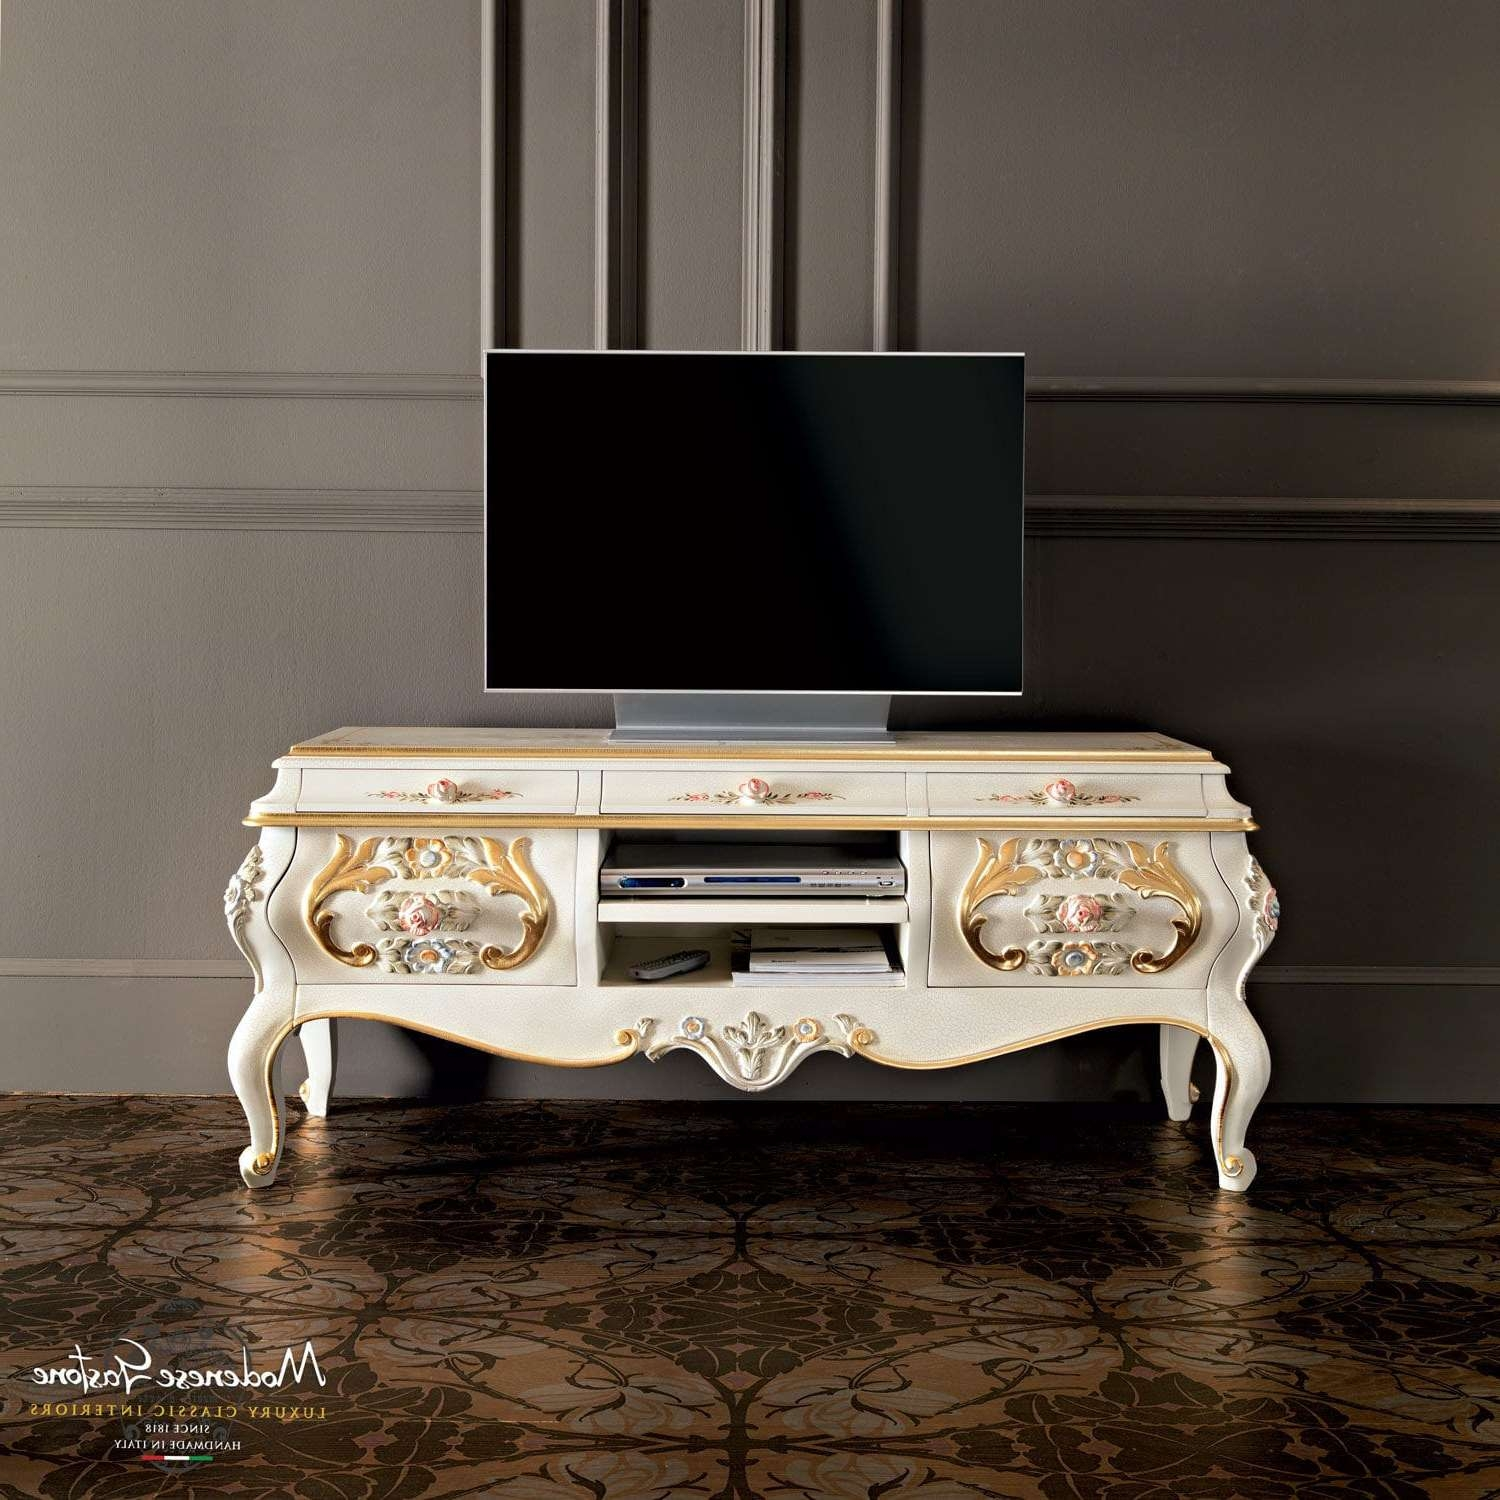 Classic Tv Cabinet / Wooden – Villa Venezia: 11105 – Modenese With Regard To Gold Tv Cabinets (View 4 of 20)